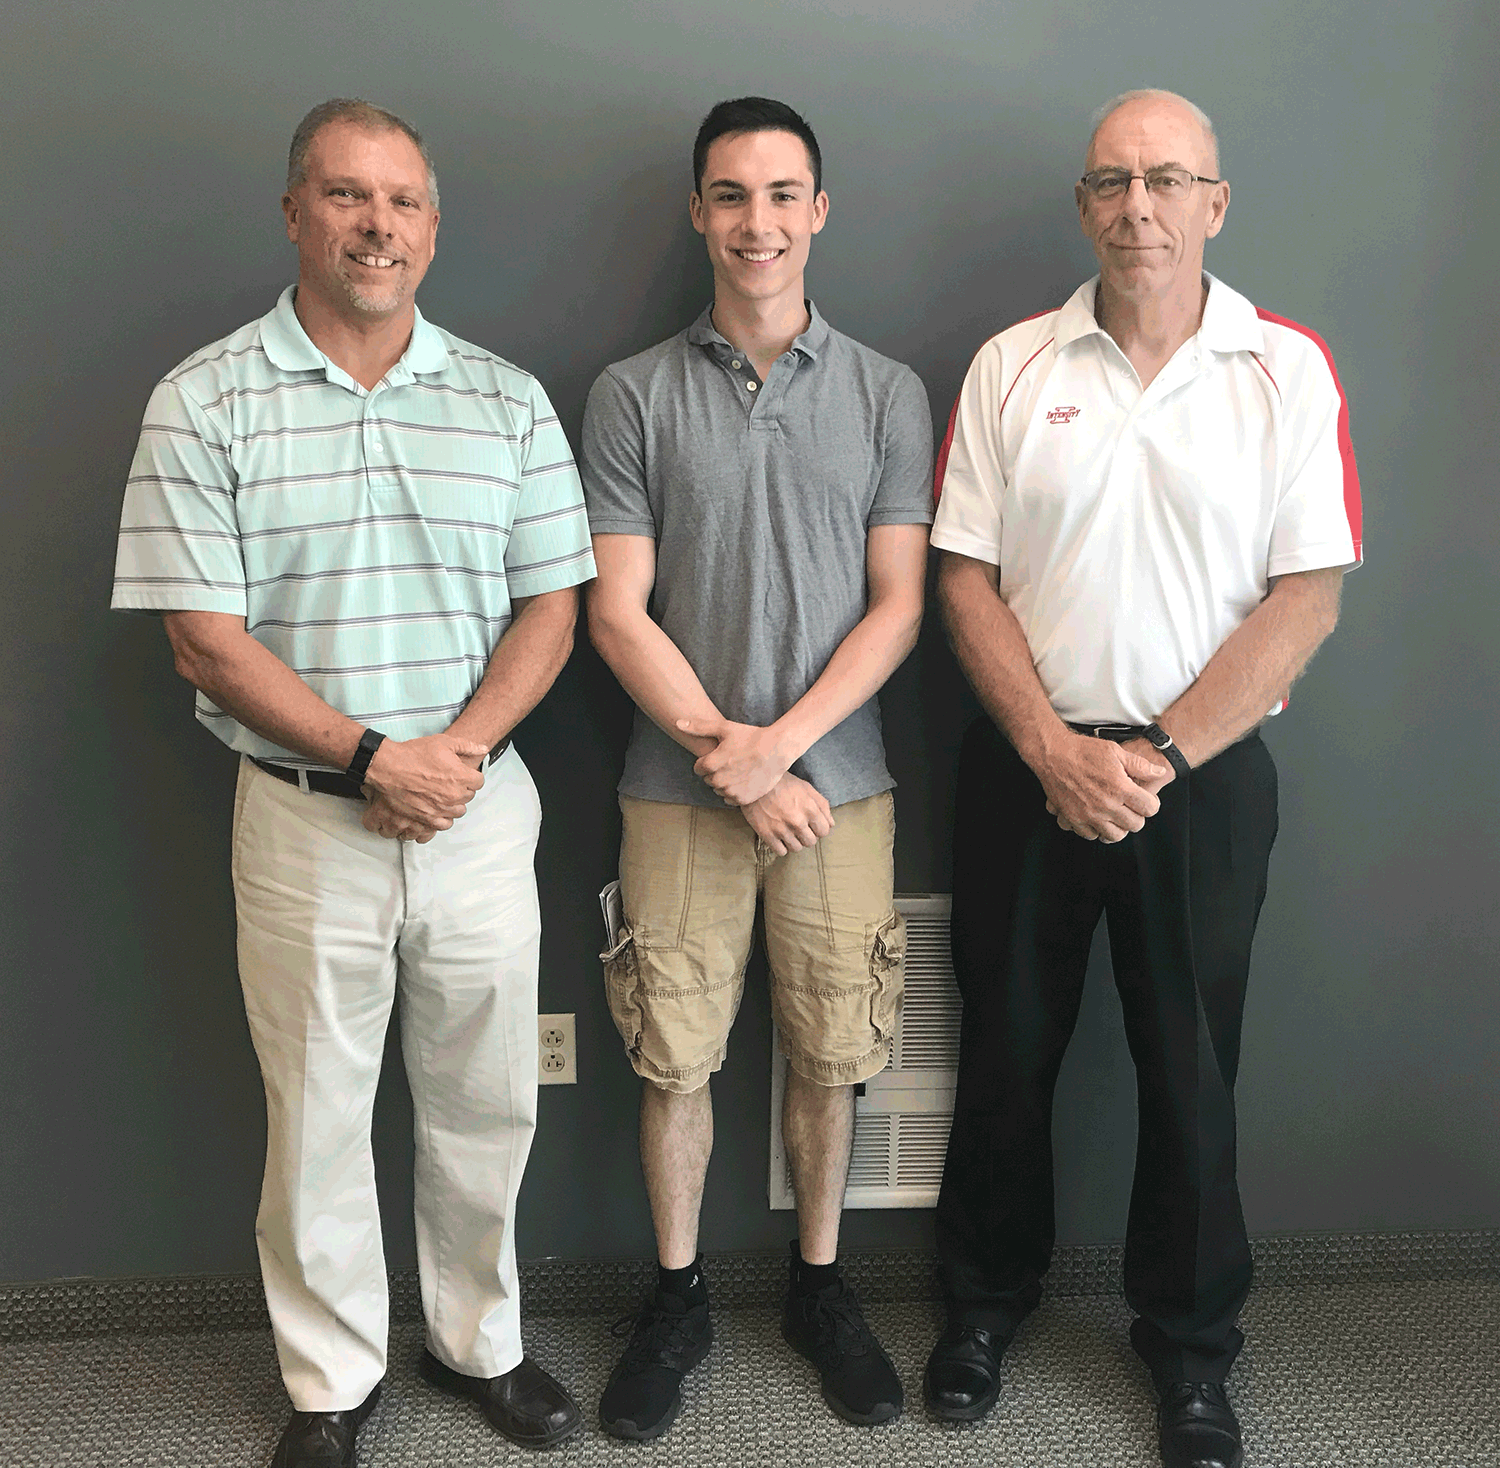 Gus Evans (c) after being prayed over by Redeemer Lutheran Church as he prepares to leave for United States Marine Corps bootcamp in Parris Island, SC. Gus is seen here with a couple of Redeemer's Marines, Ron Reimert (l) and Steven Koepsel (r).